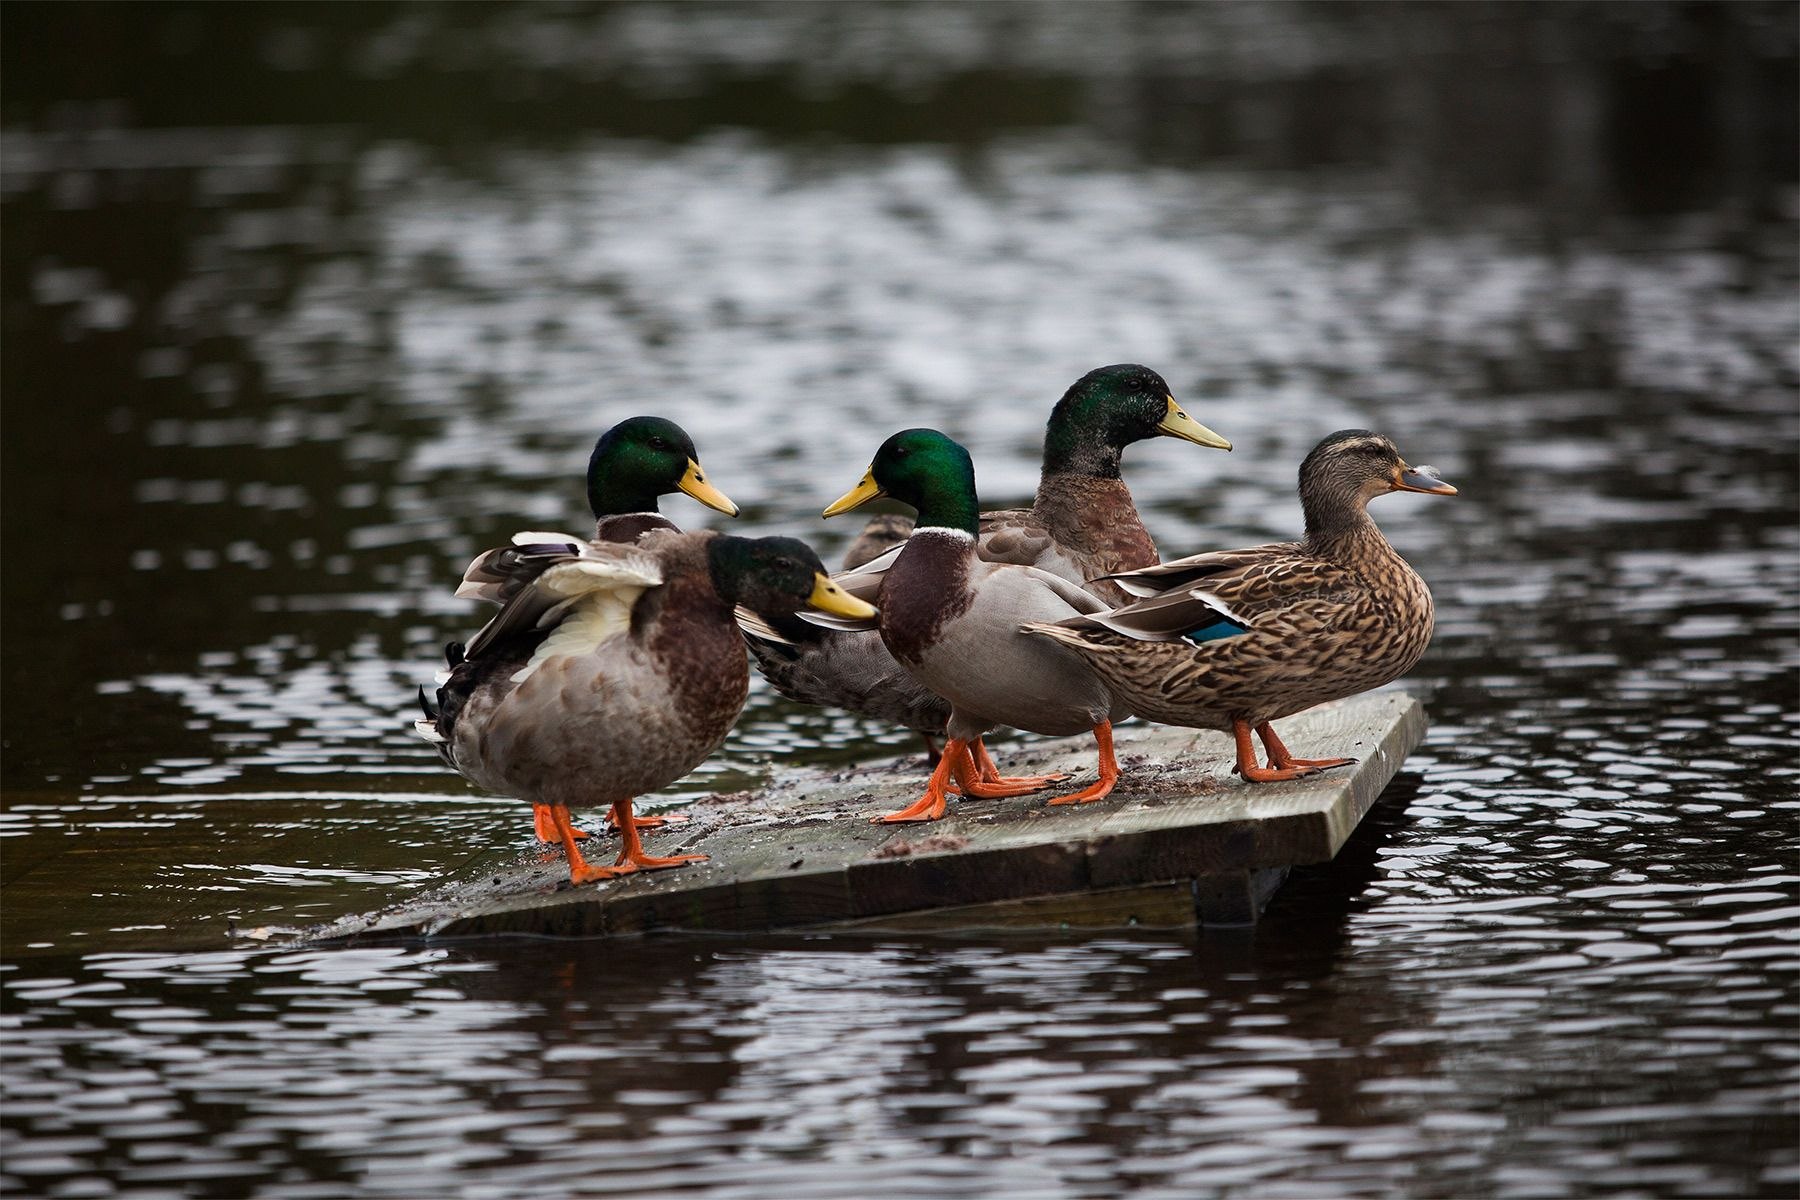 Mallard Ducks find a high spot along the flooded area along Waccamaw Lake Drive in Conway, South Carolina October 6, 2015. Floodwaters from unprecedented rainfall in South Carolina have killed 11 people, closed some 550 roads and bridges and prompted hundreds of rescues of people trapped in homes and cars, officials said on Monday. REUTERS/Randall Hill